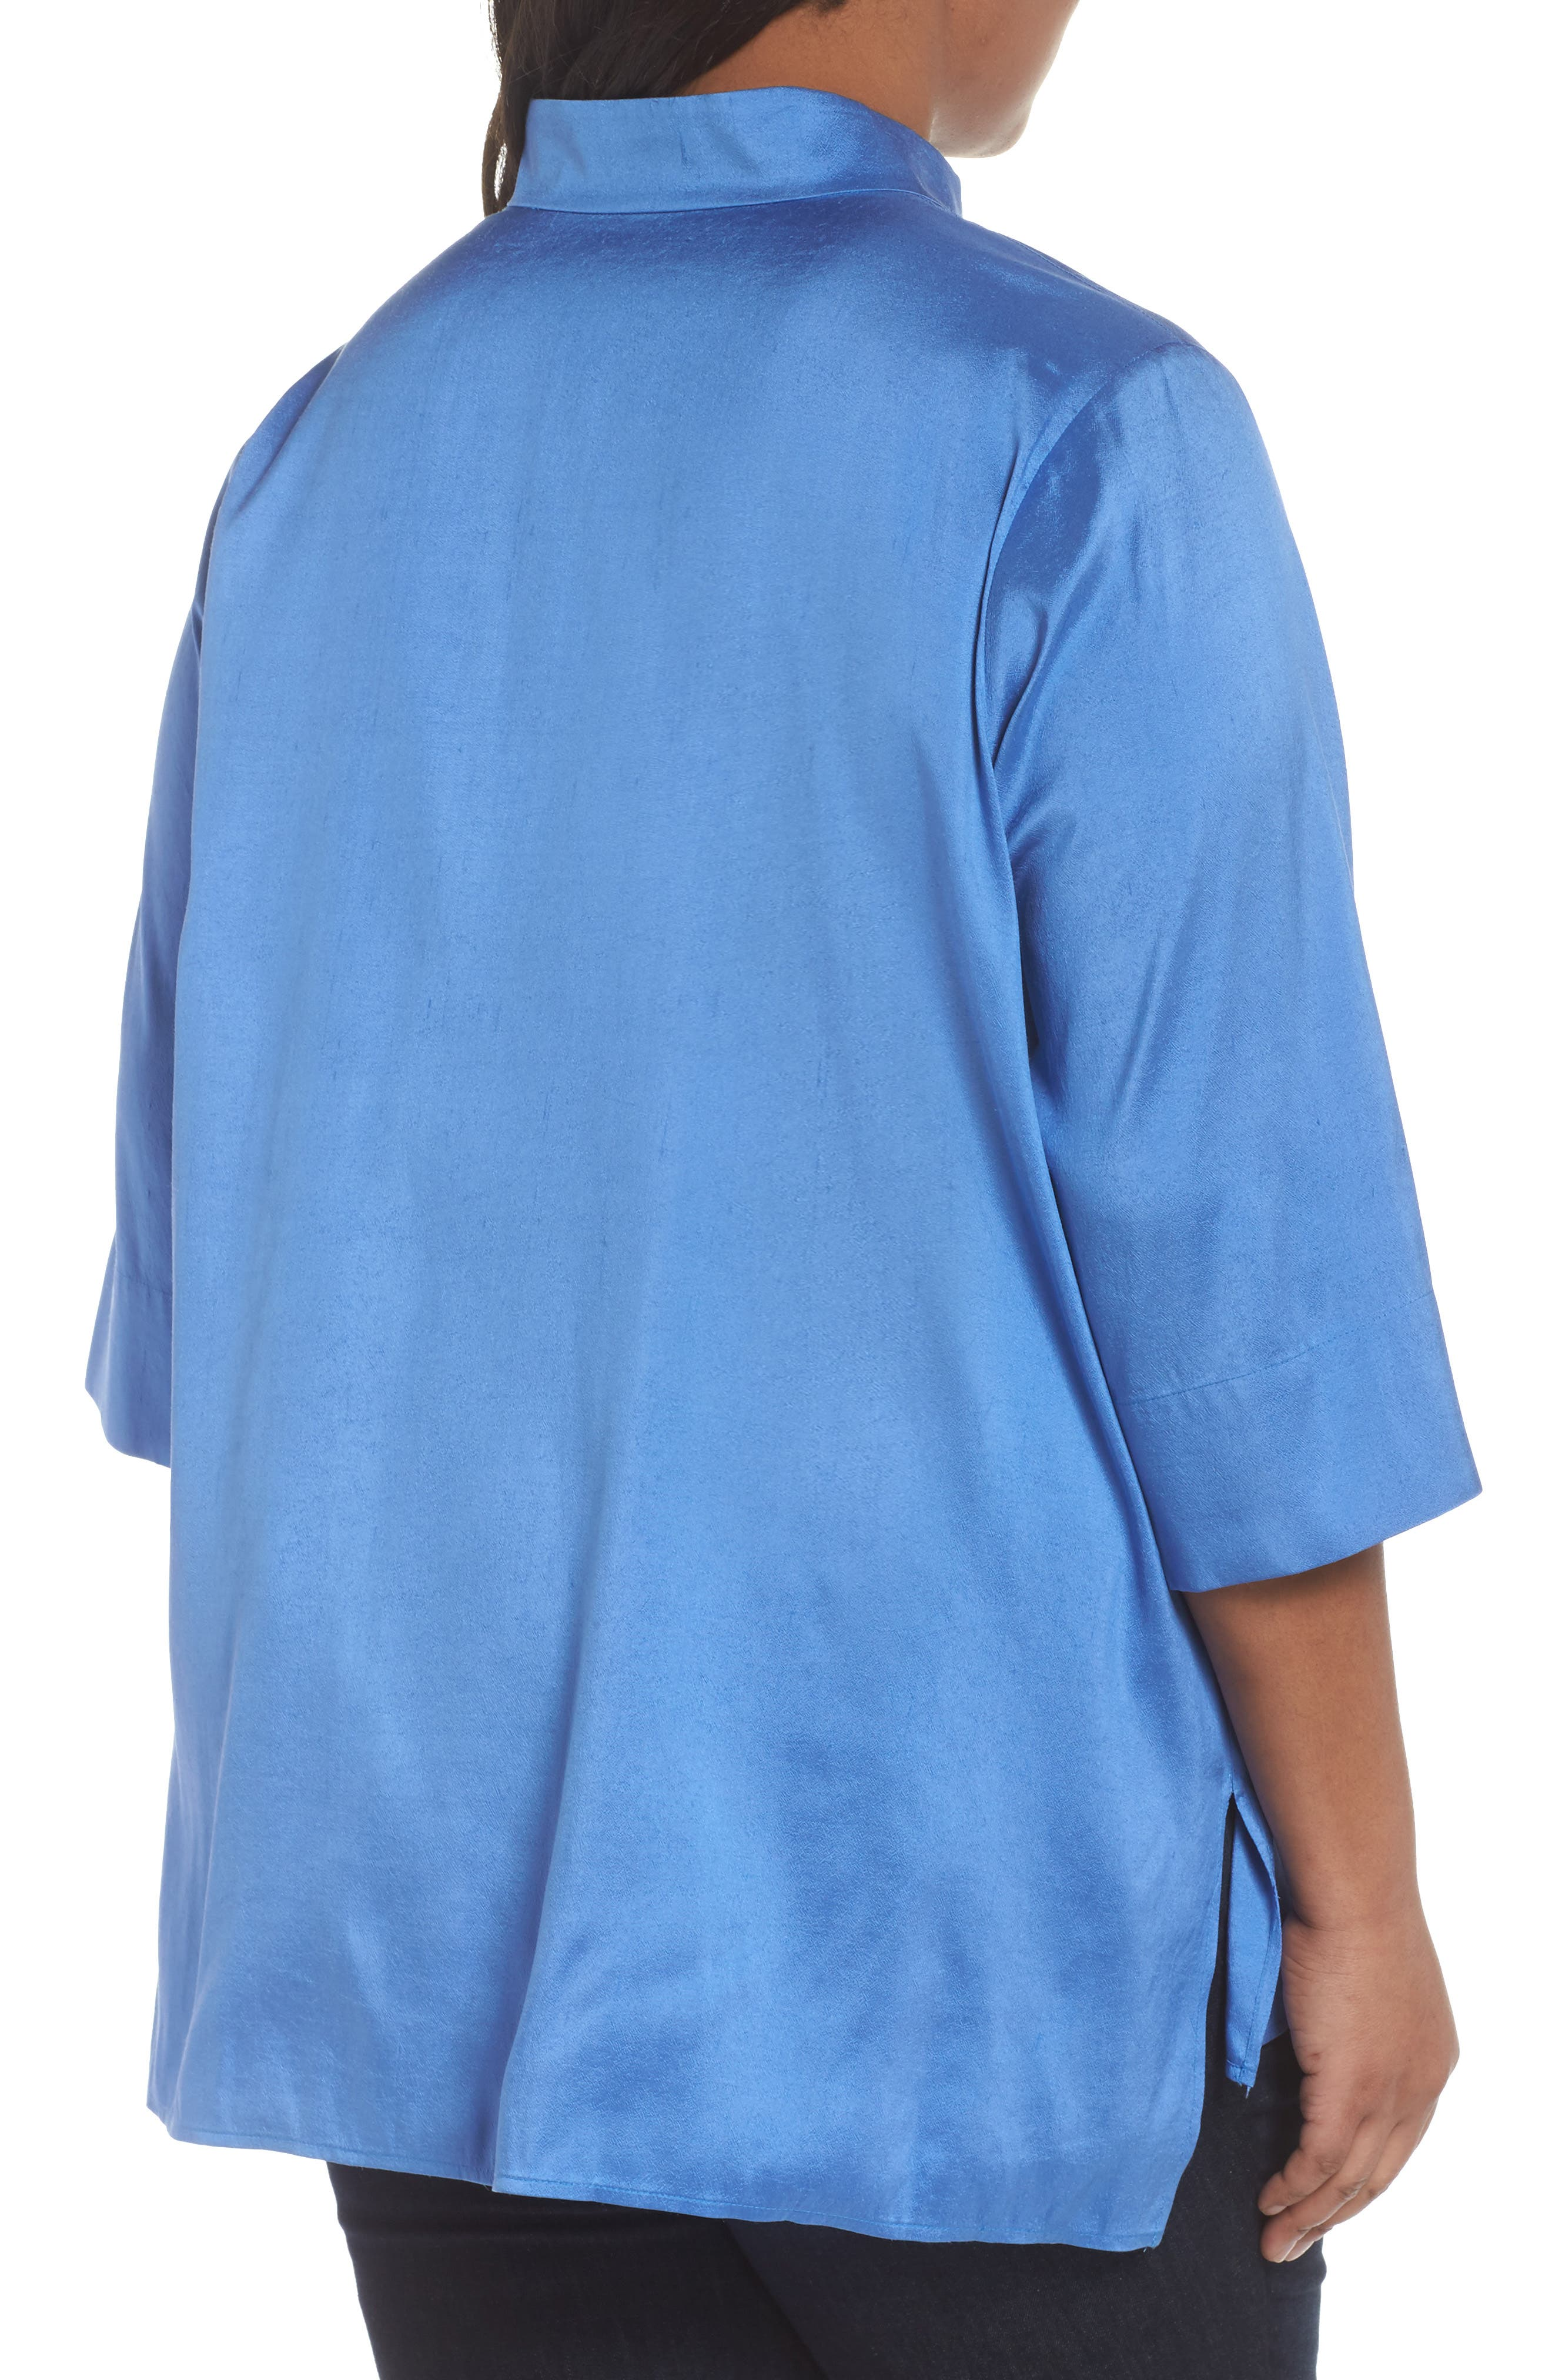 Notch Collar Shirt,                             Alternate thumbnail 2, color,                             Blue Bell